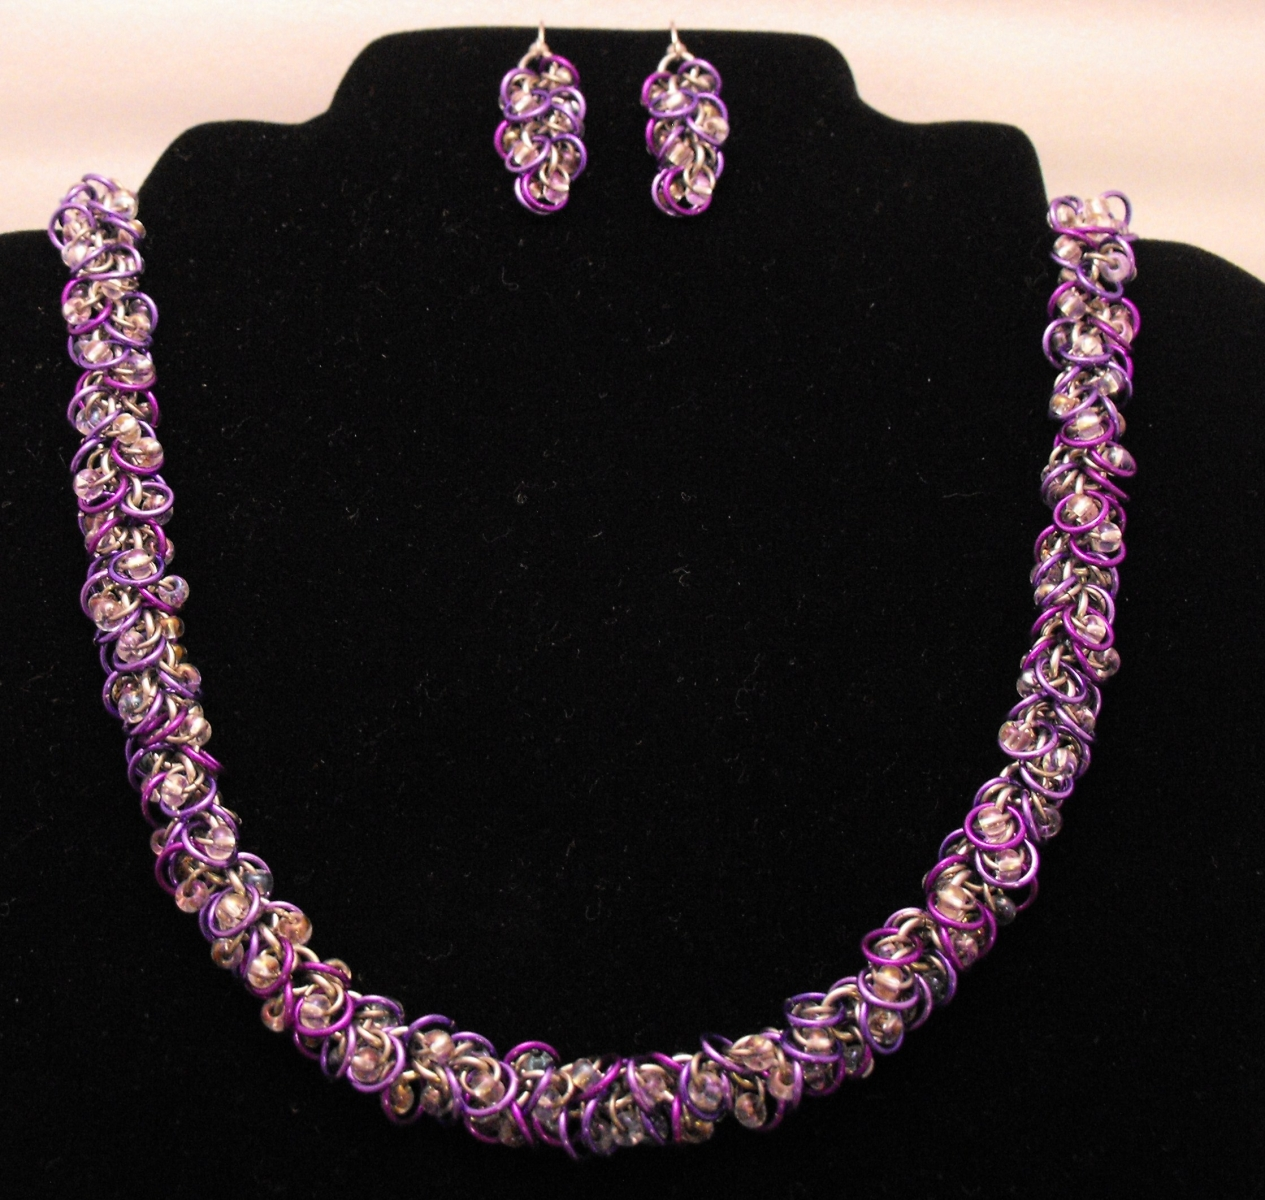 Shaggy loops with glass beads